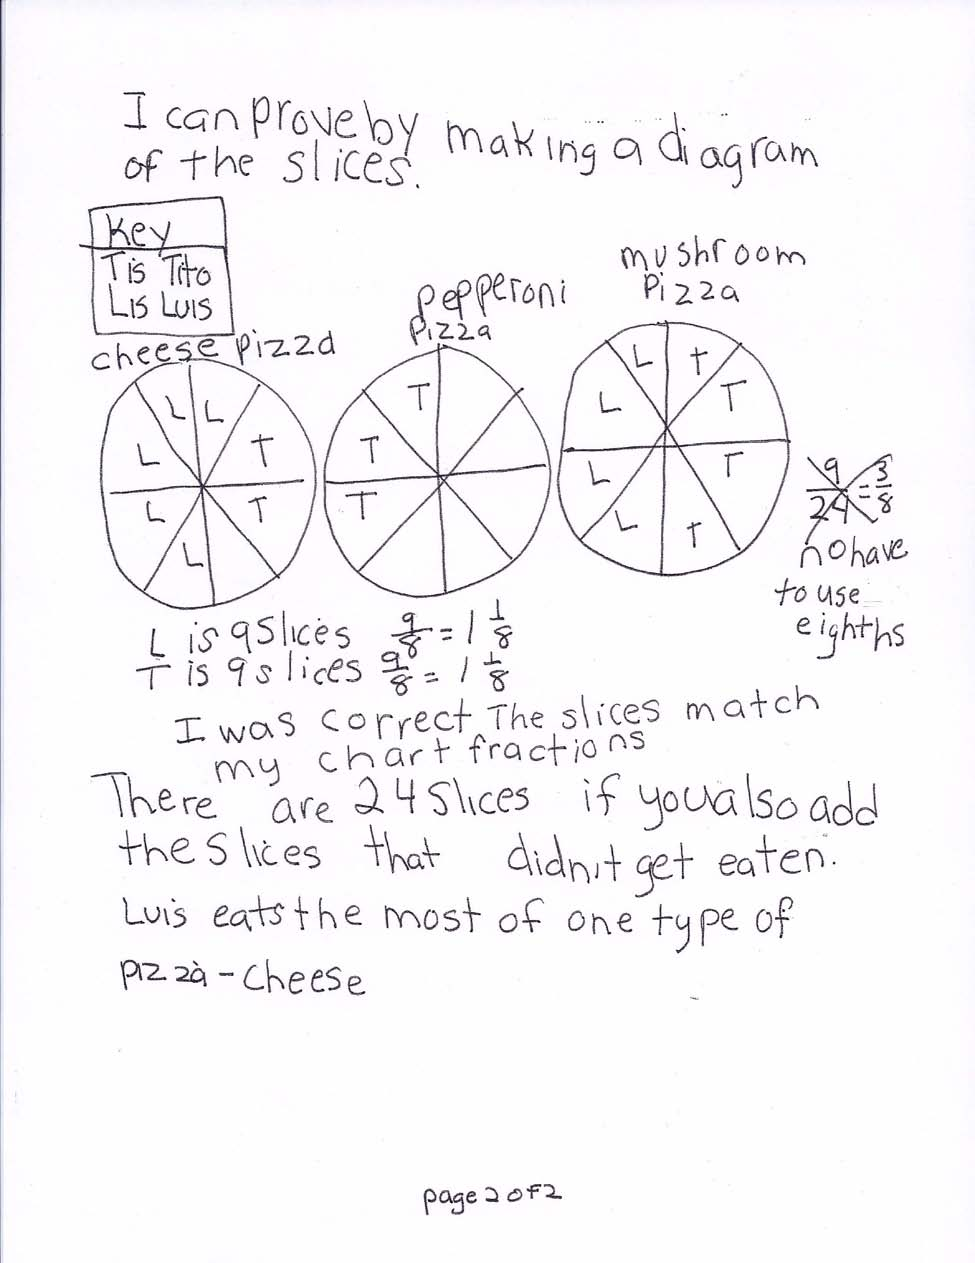 The student models with mathematics. The chart is accurate with all columns labeled and all data accurate. The area model/diagram of the pizzas are accurate, labeled, and a key defines Tito and Luis.